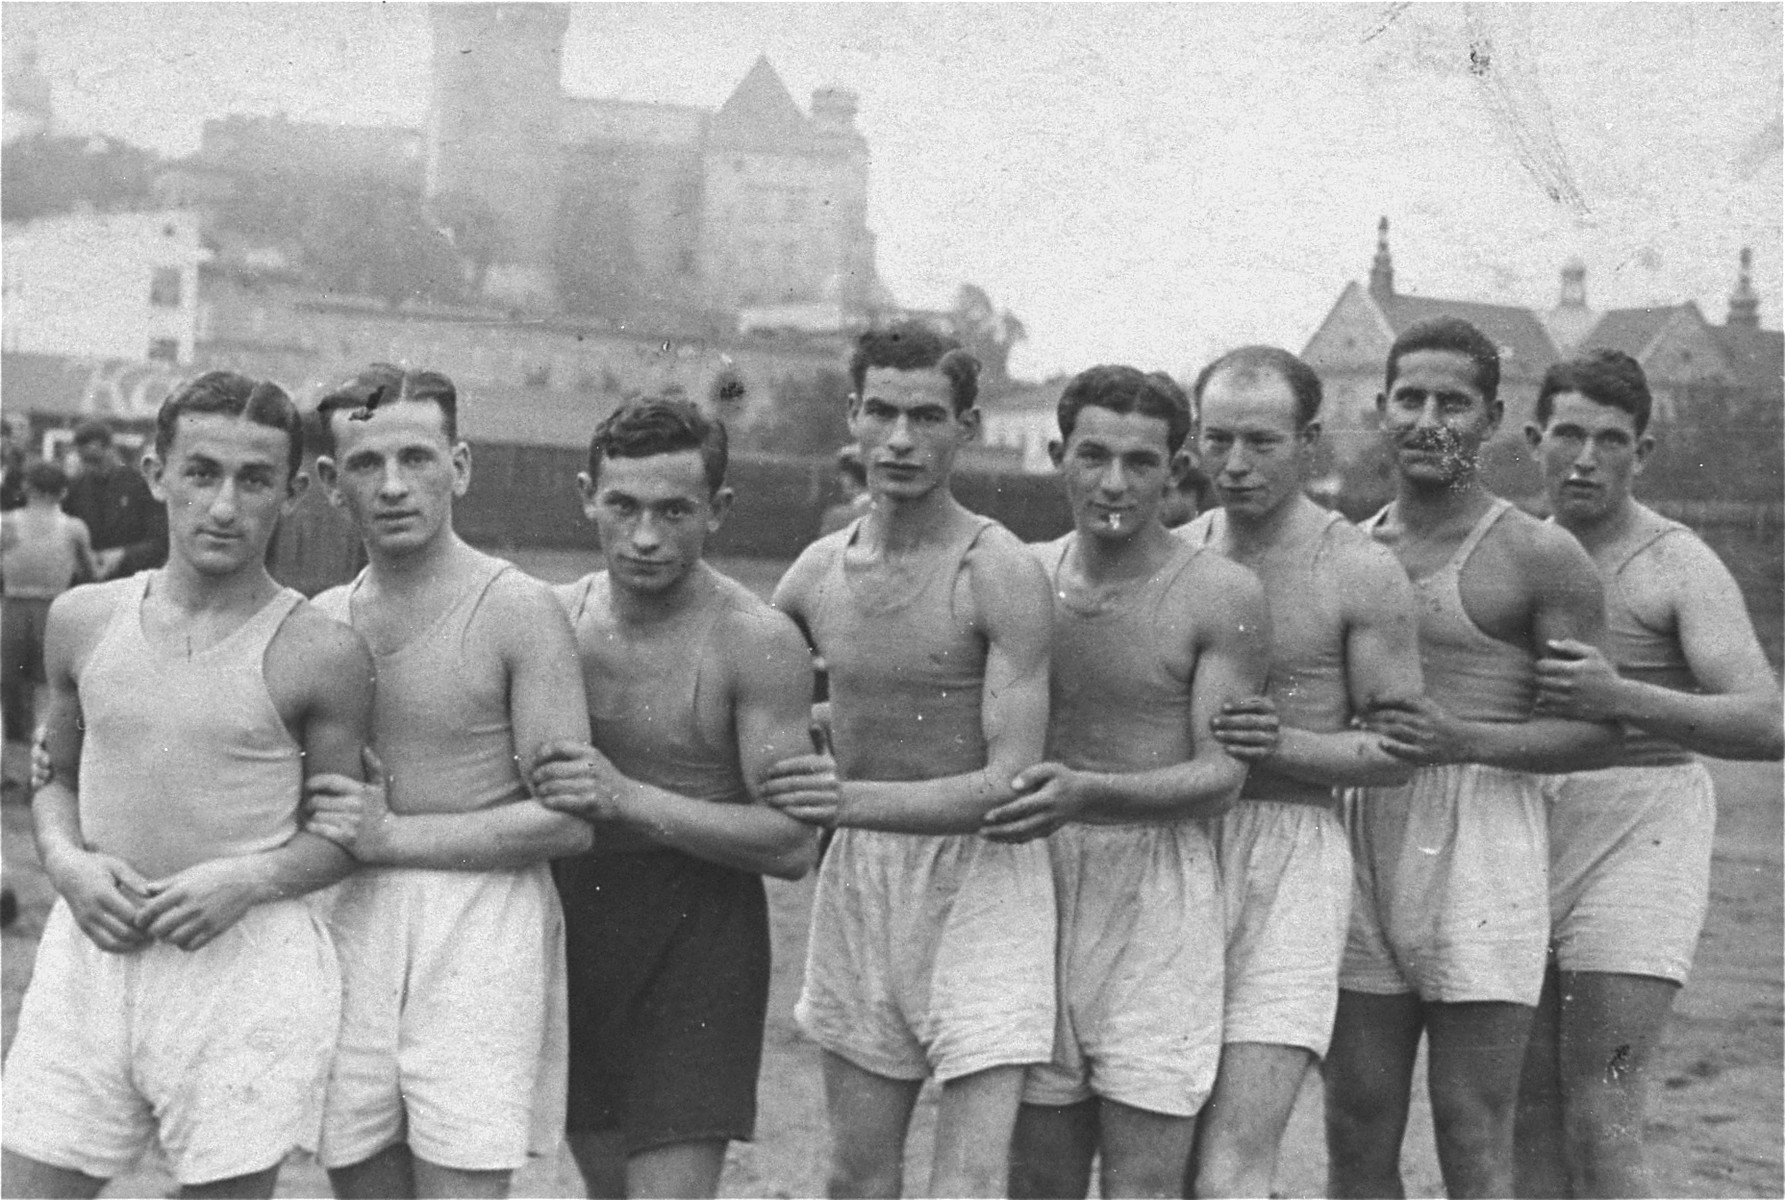 Group portrait of members of the Maccabi boxing team in Krakow.  Among those pictured here is the donor, Fred Eichner (fourth from the right).